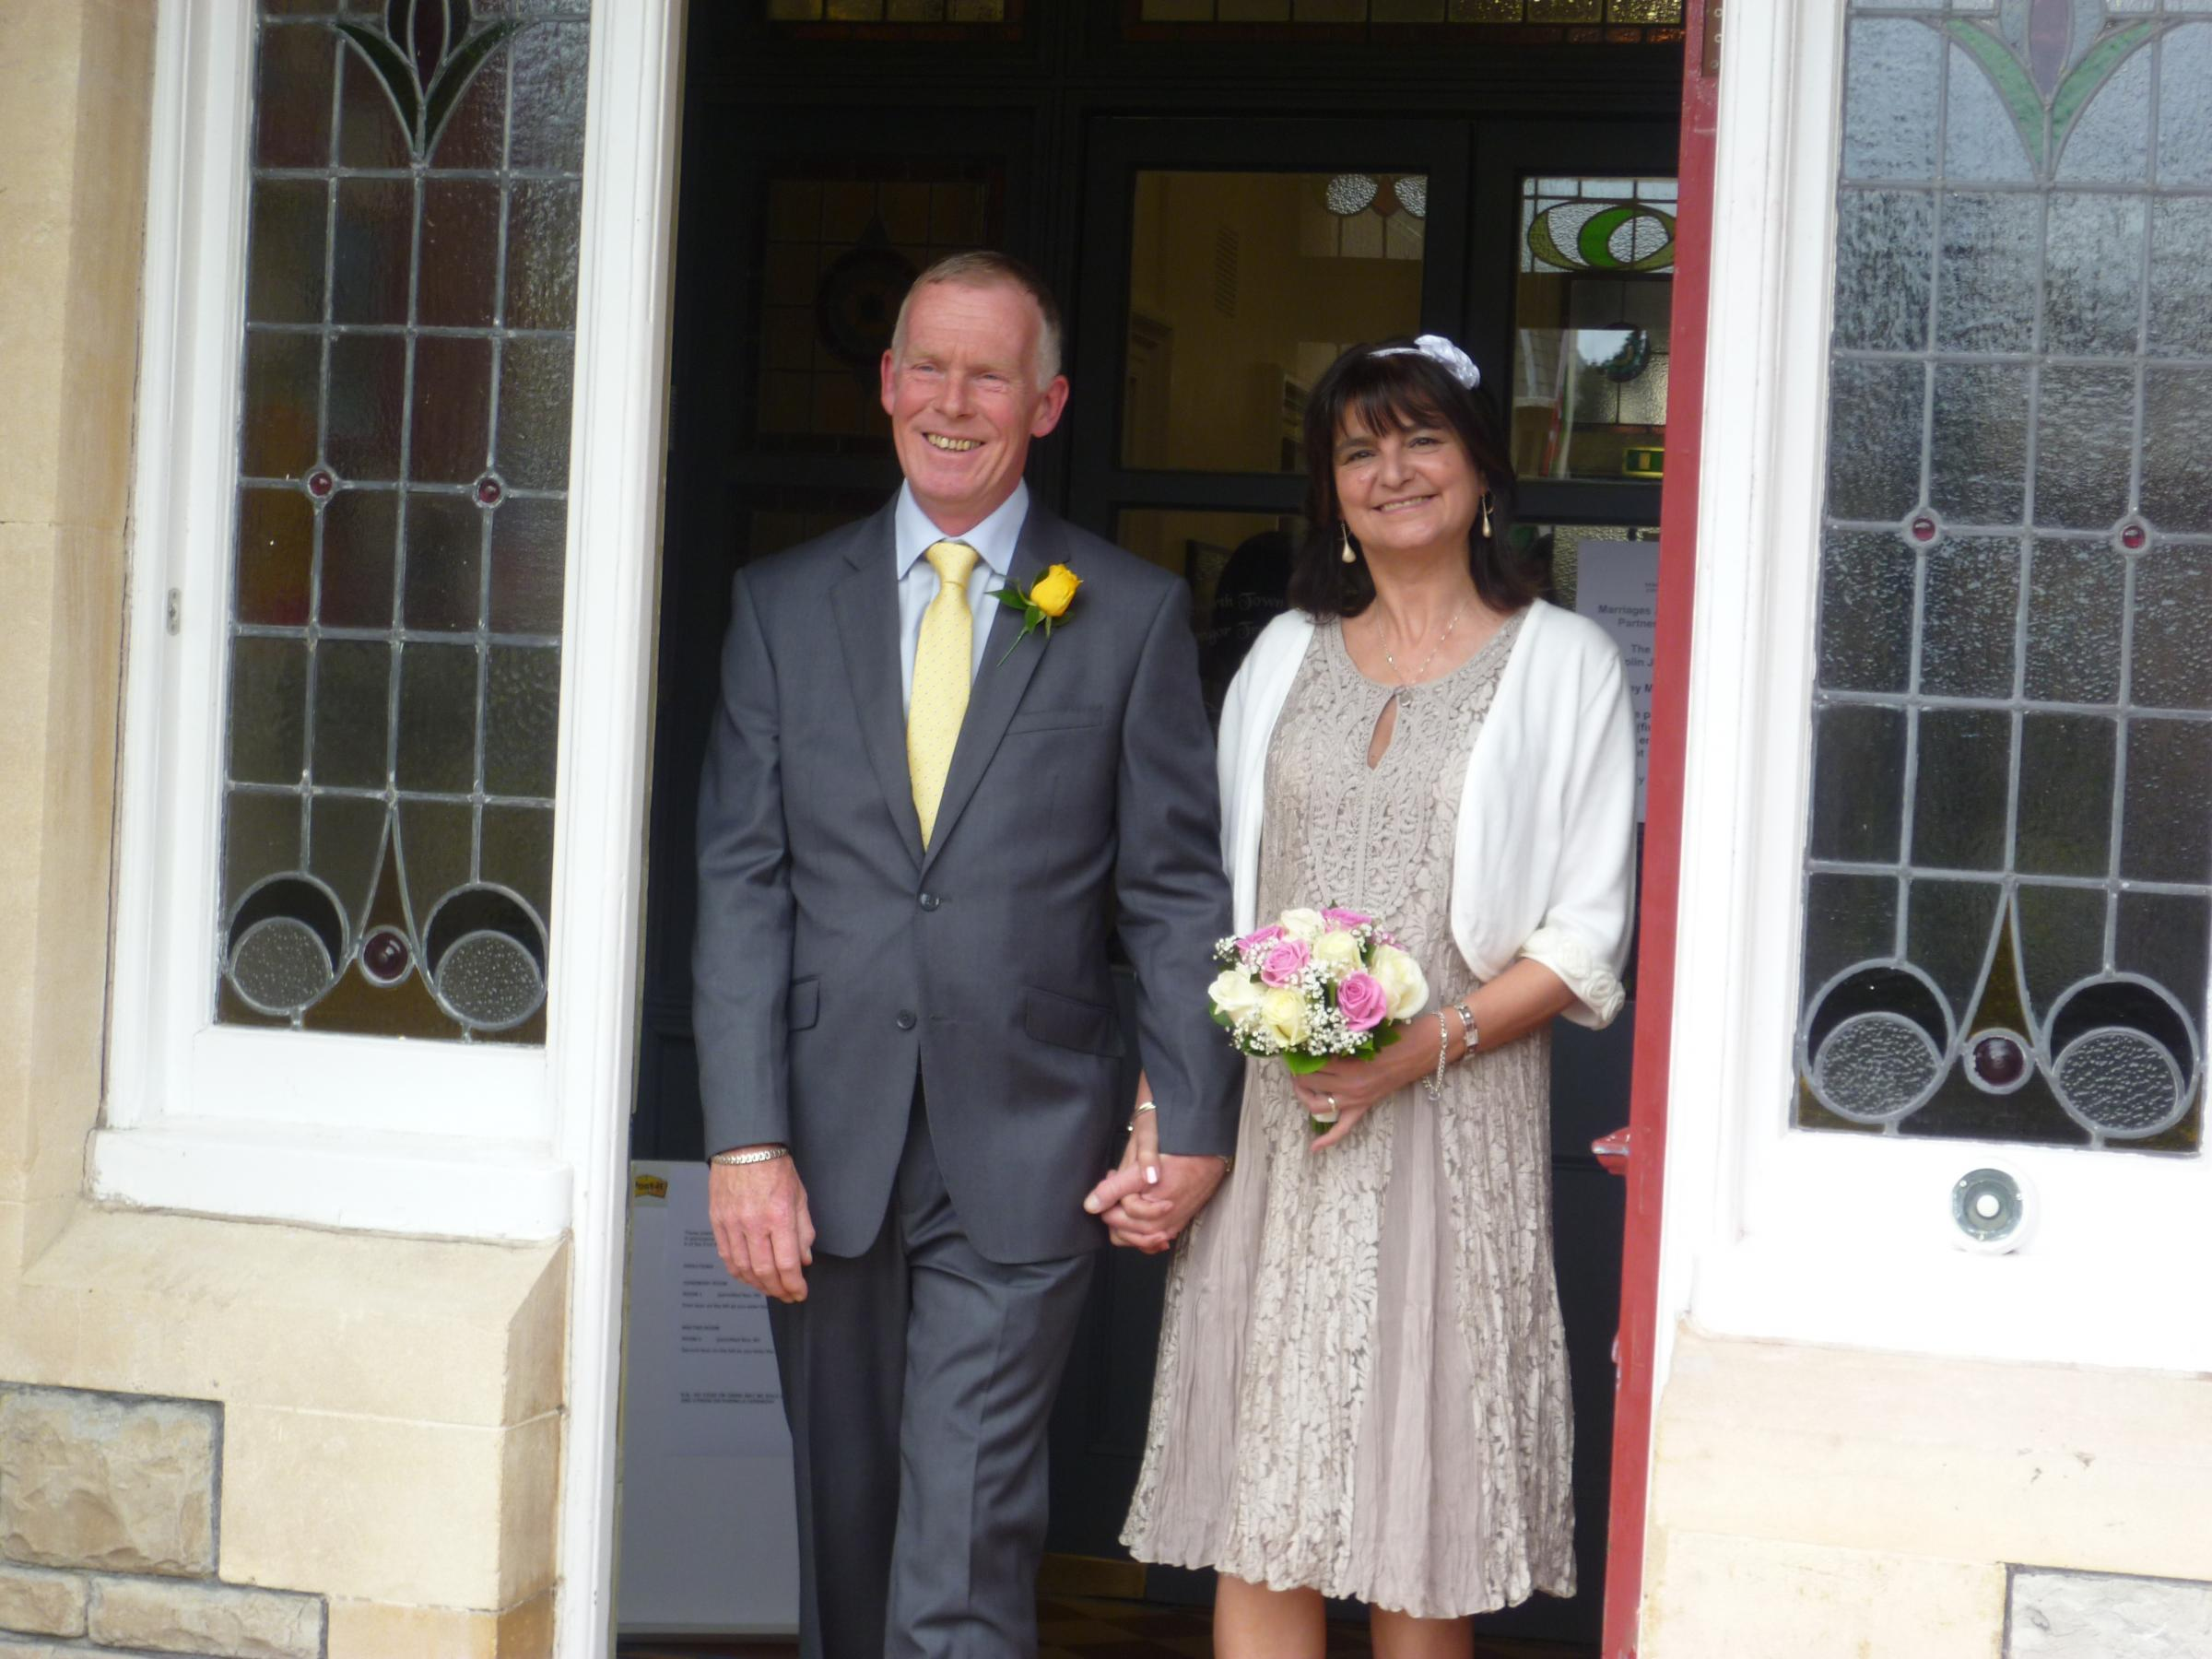 WEDDING BELLS: Colin Campbell and Hayley Sagastume got married at West House on Friday, April 25